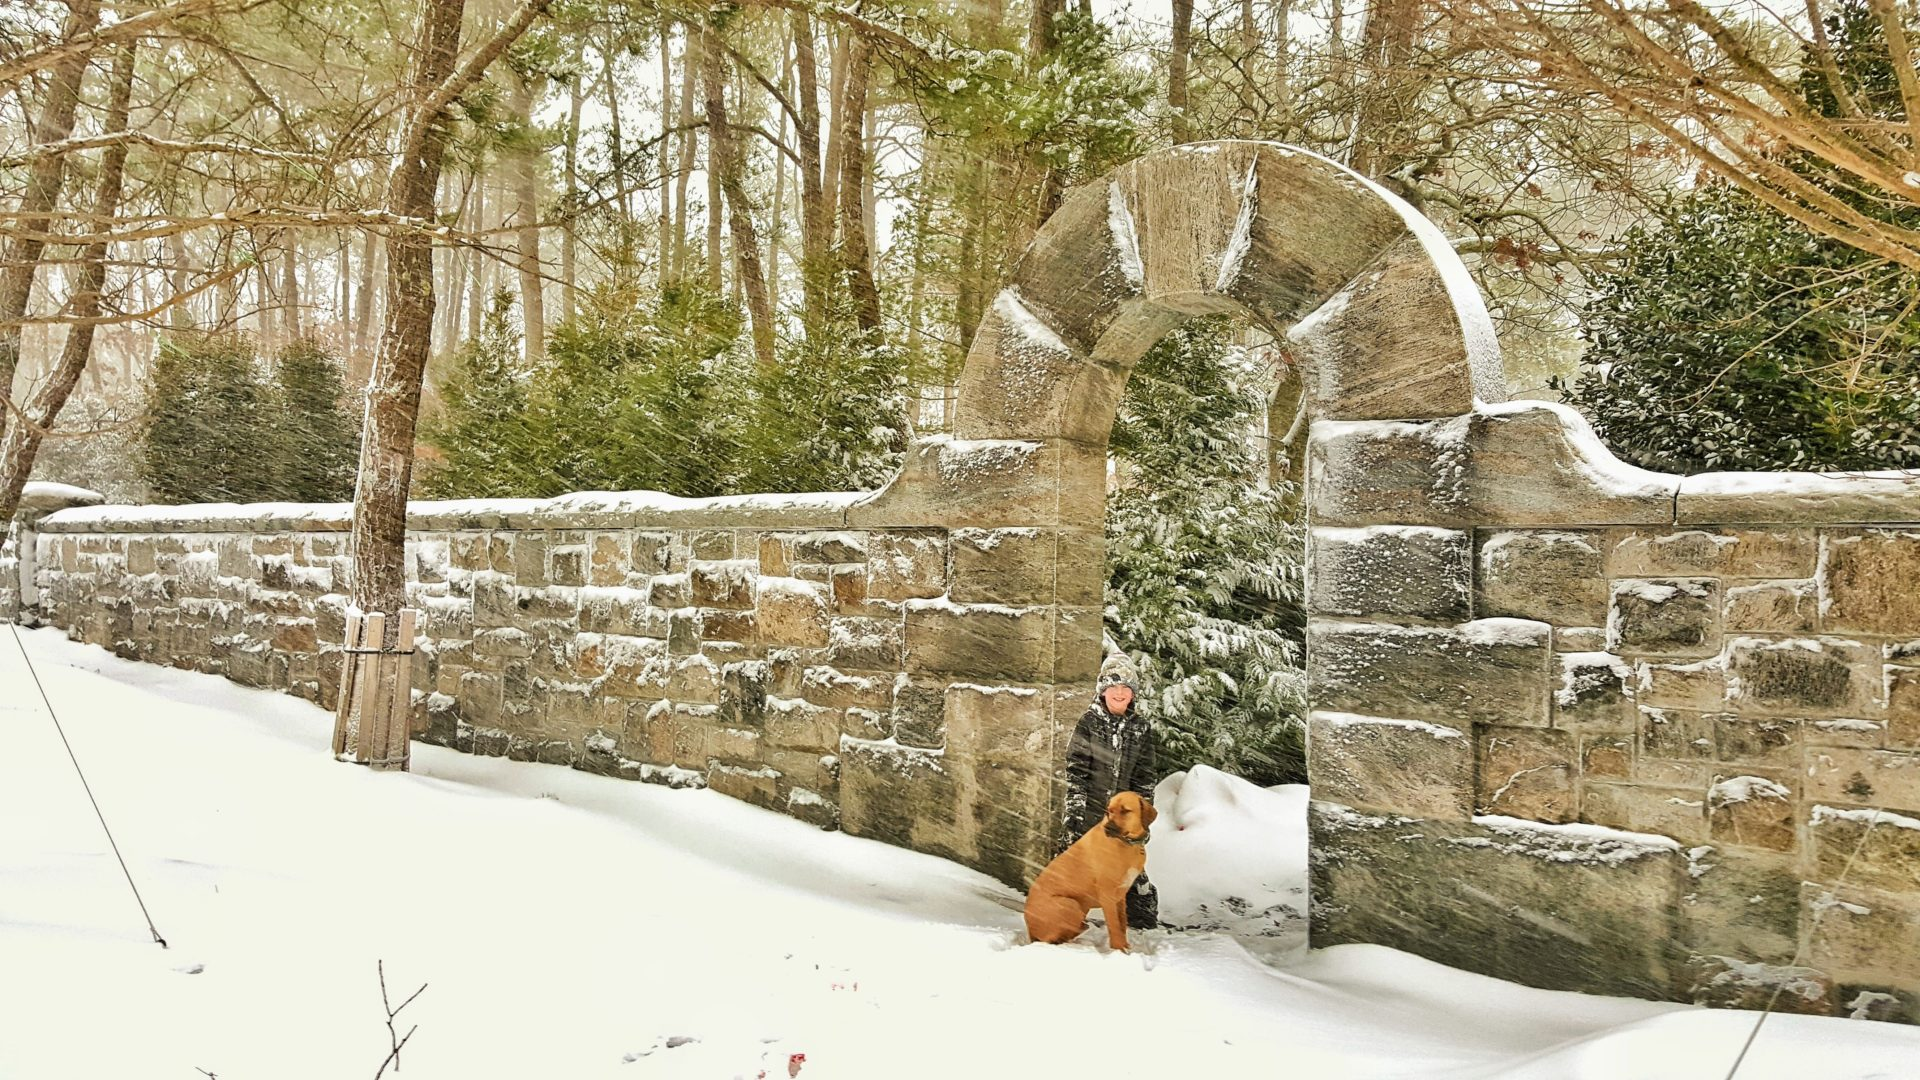 A Boy, His Dog & an Archway in the Snow